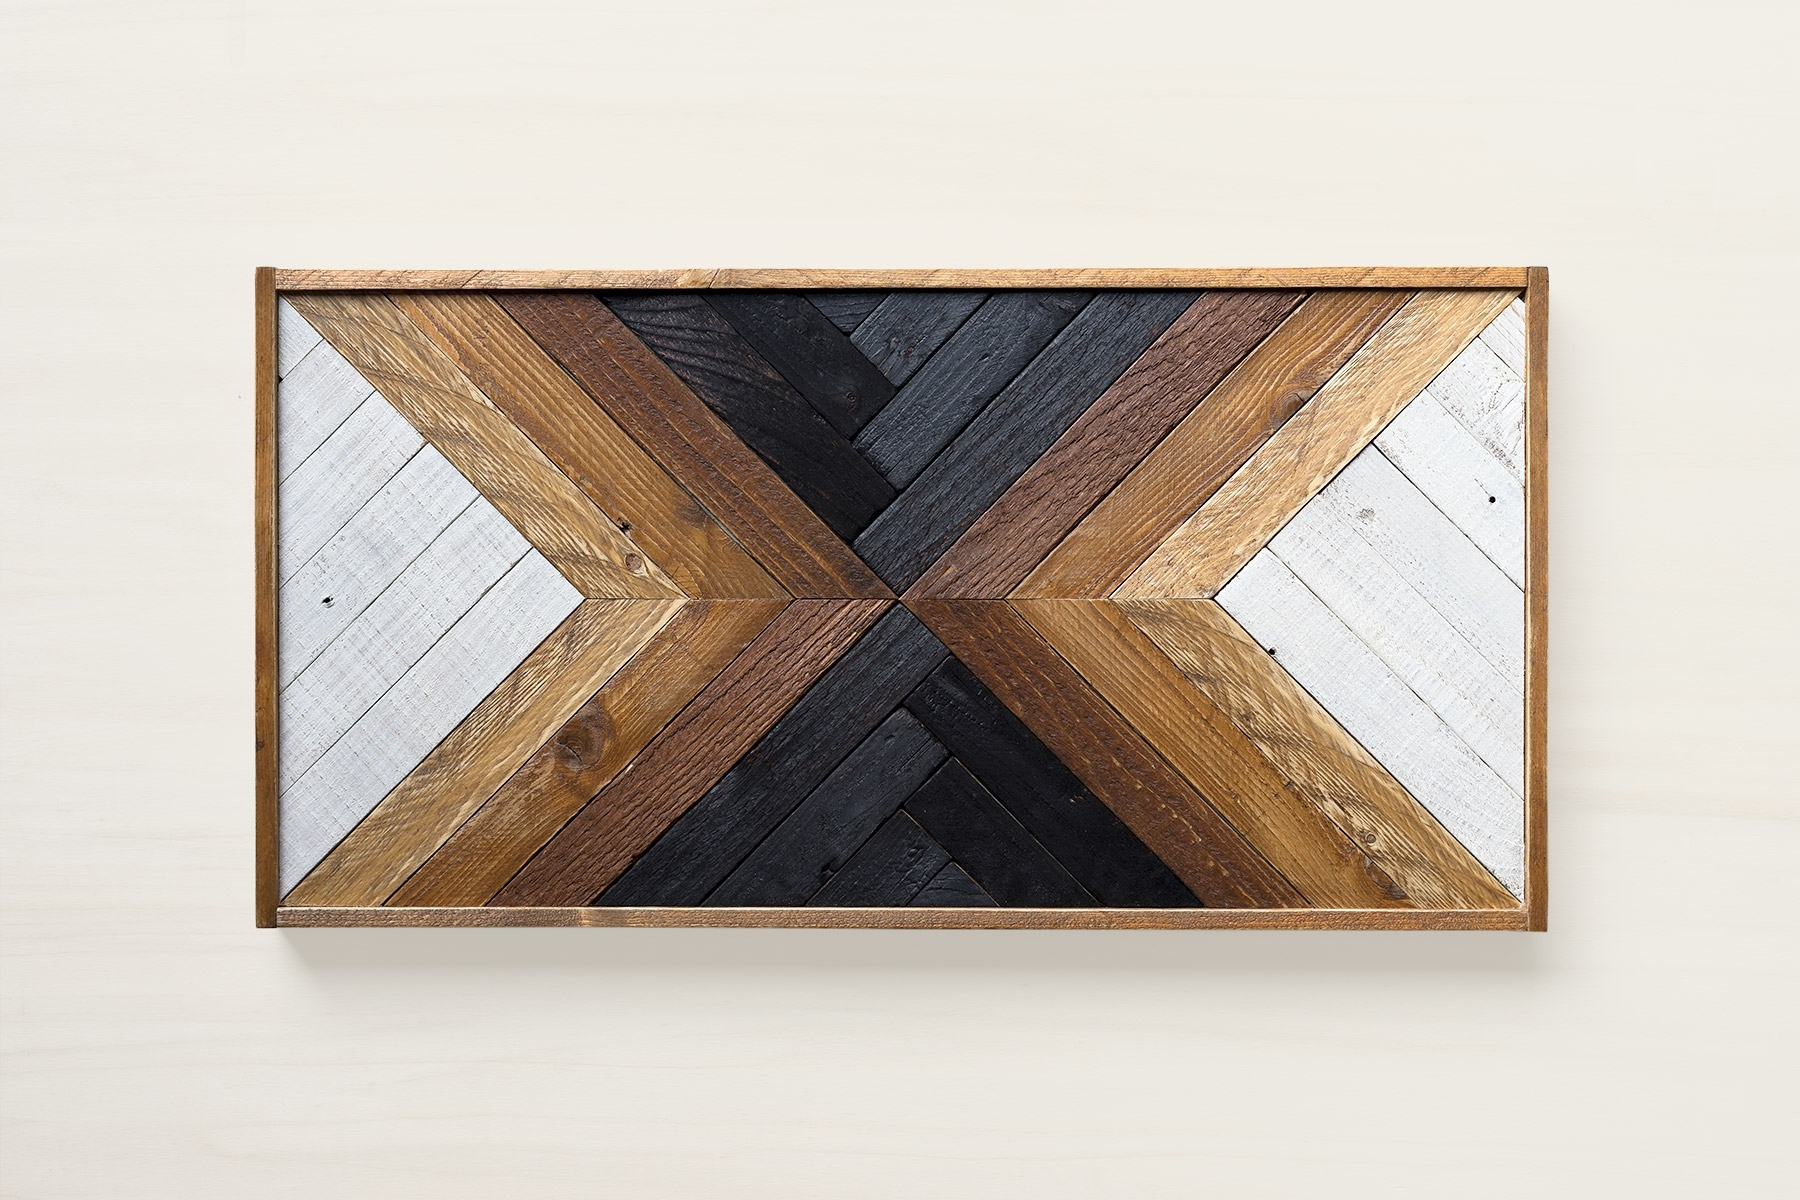 Most Recent Reclaimed Wood Wall Art Pertaining To Maka, Reclaimed Wood Wall Art, Geometric Wood Art, Art Deco Furniture (View 14 of 15)